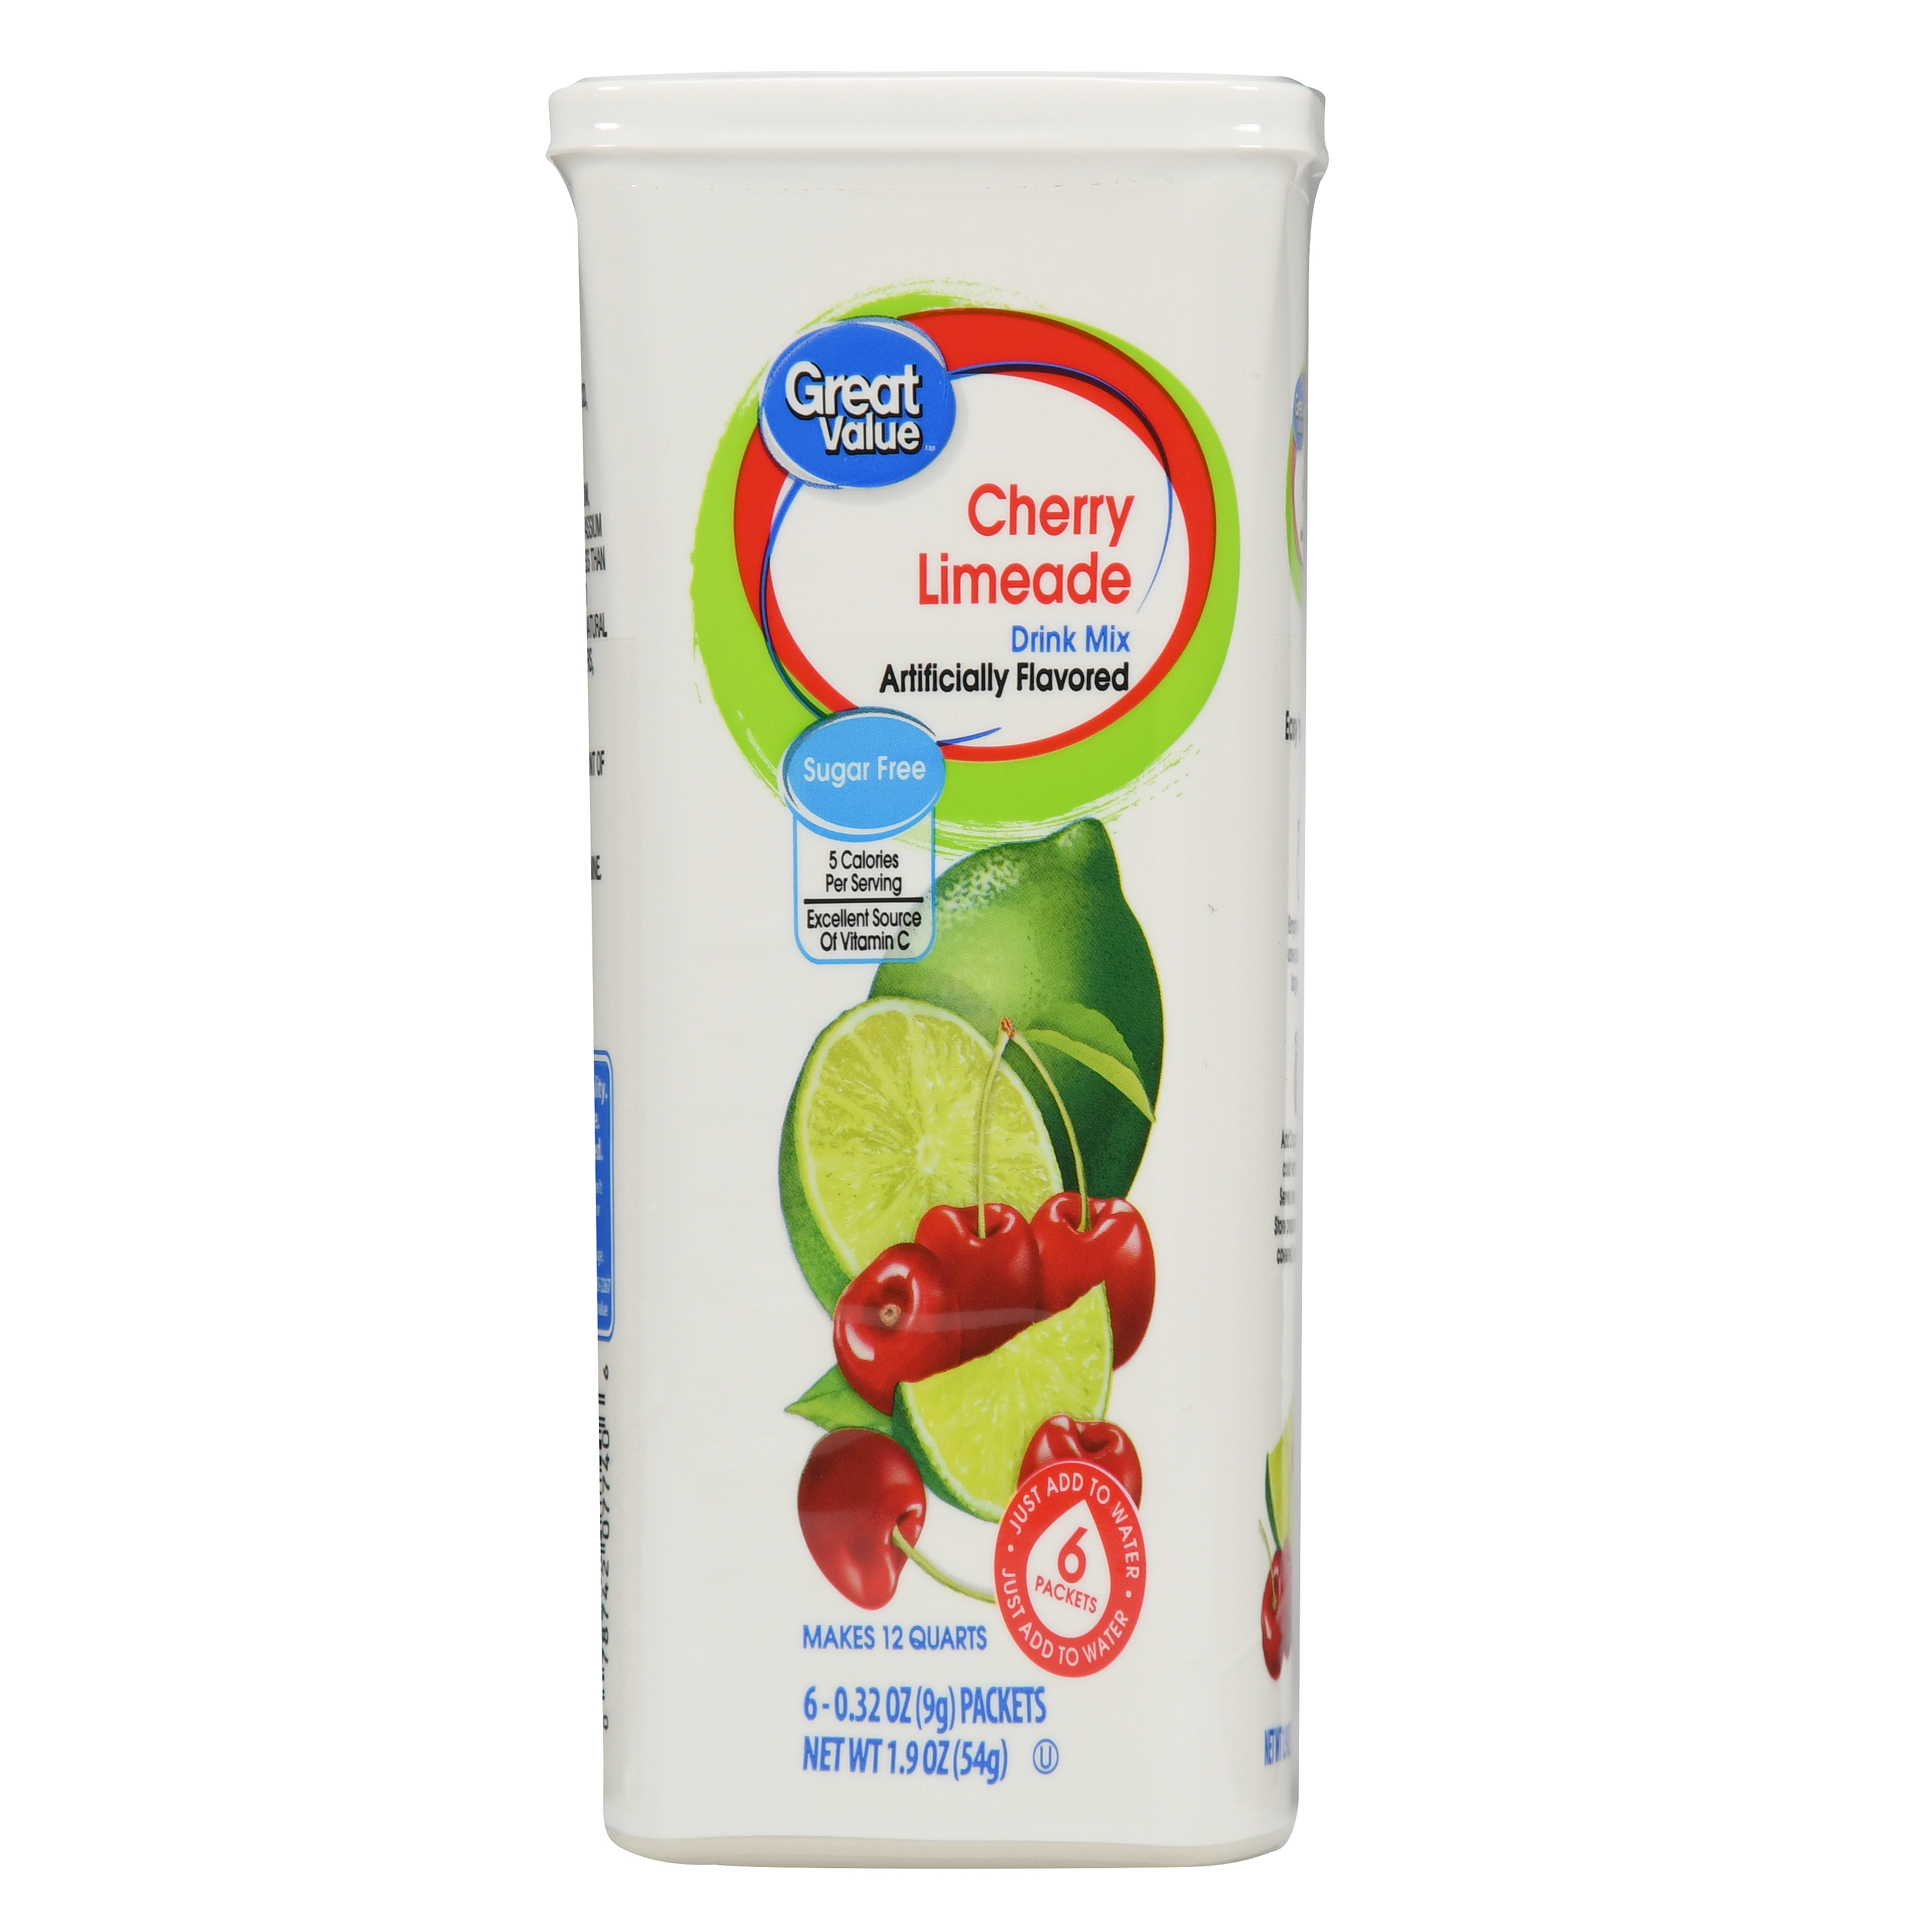 Great Value Drink Mix, Cherry Limeade, Sugar-Free, 1.9 oz, 6 Count